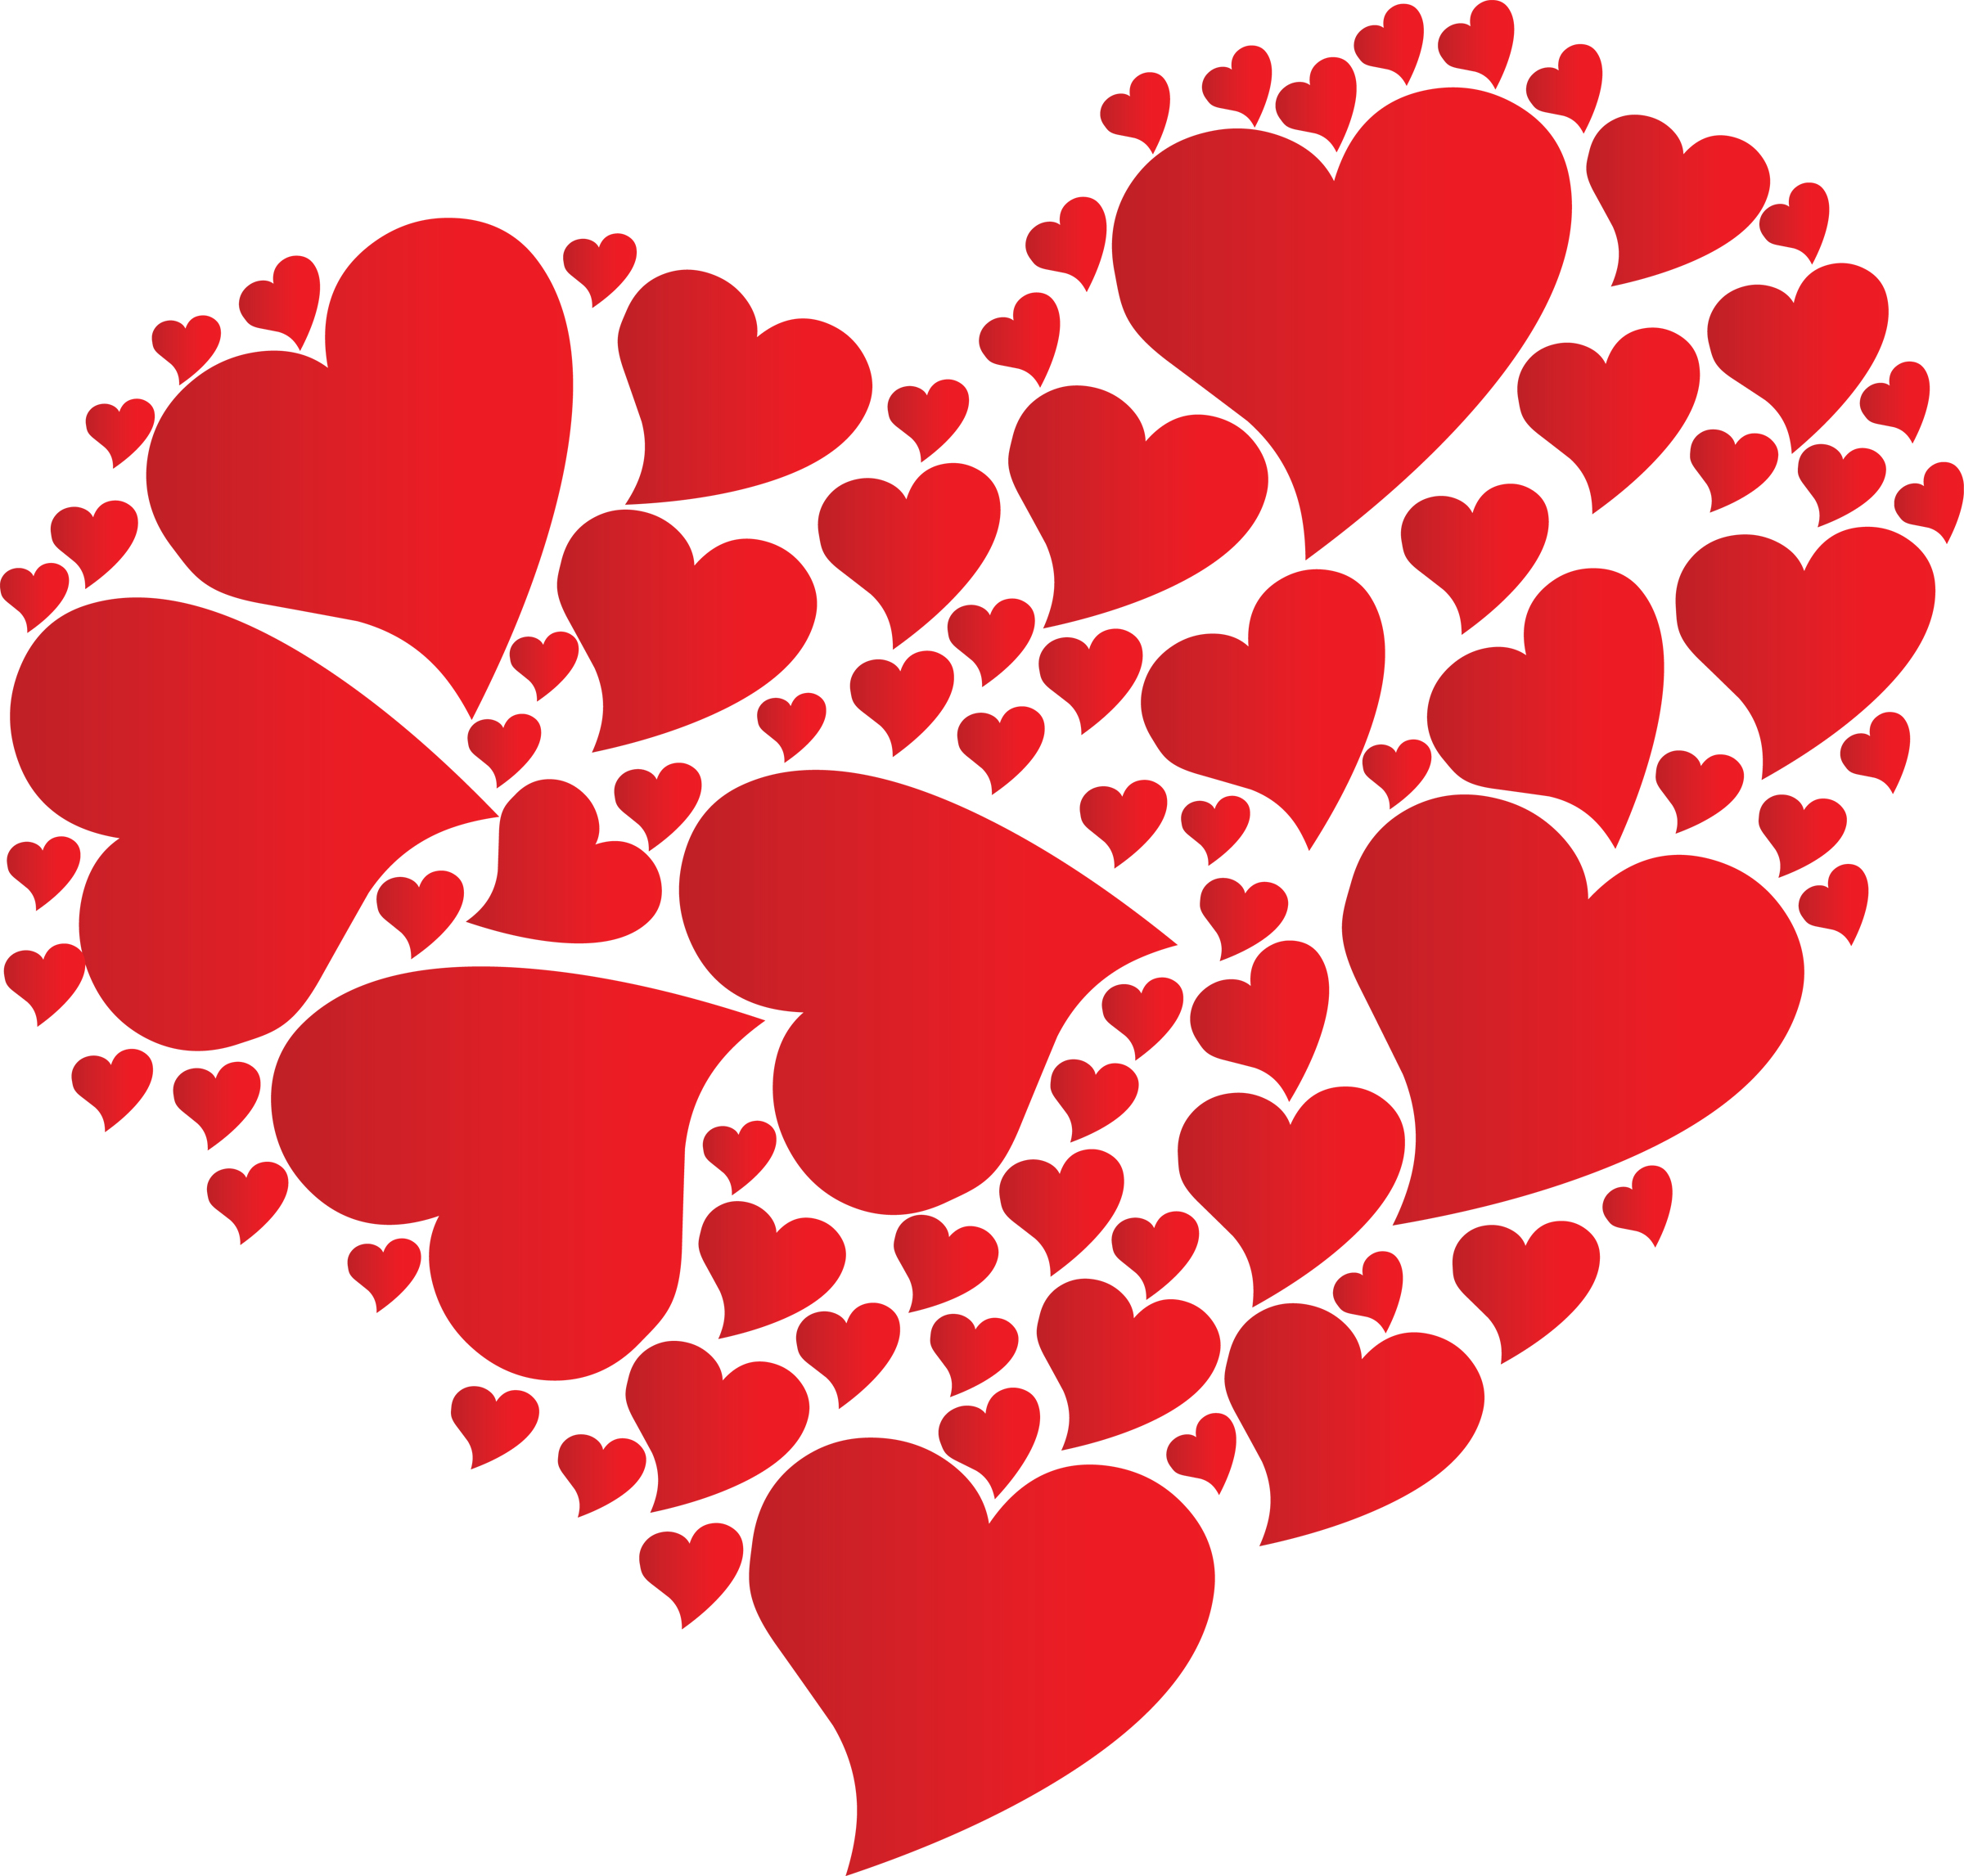 Heart Pic | Top HDQ Heart Images, Wallpapers - Nice TSF82 Collection